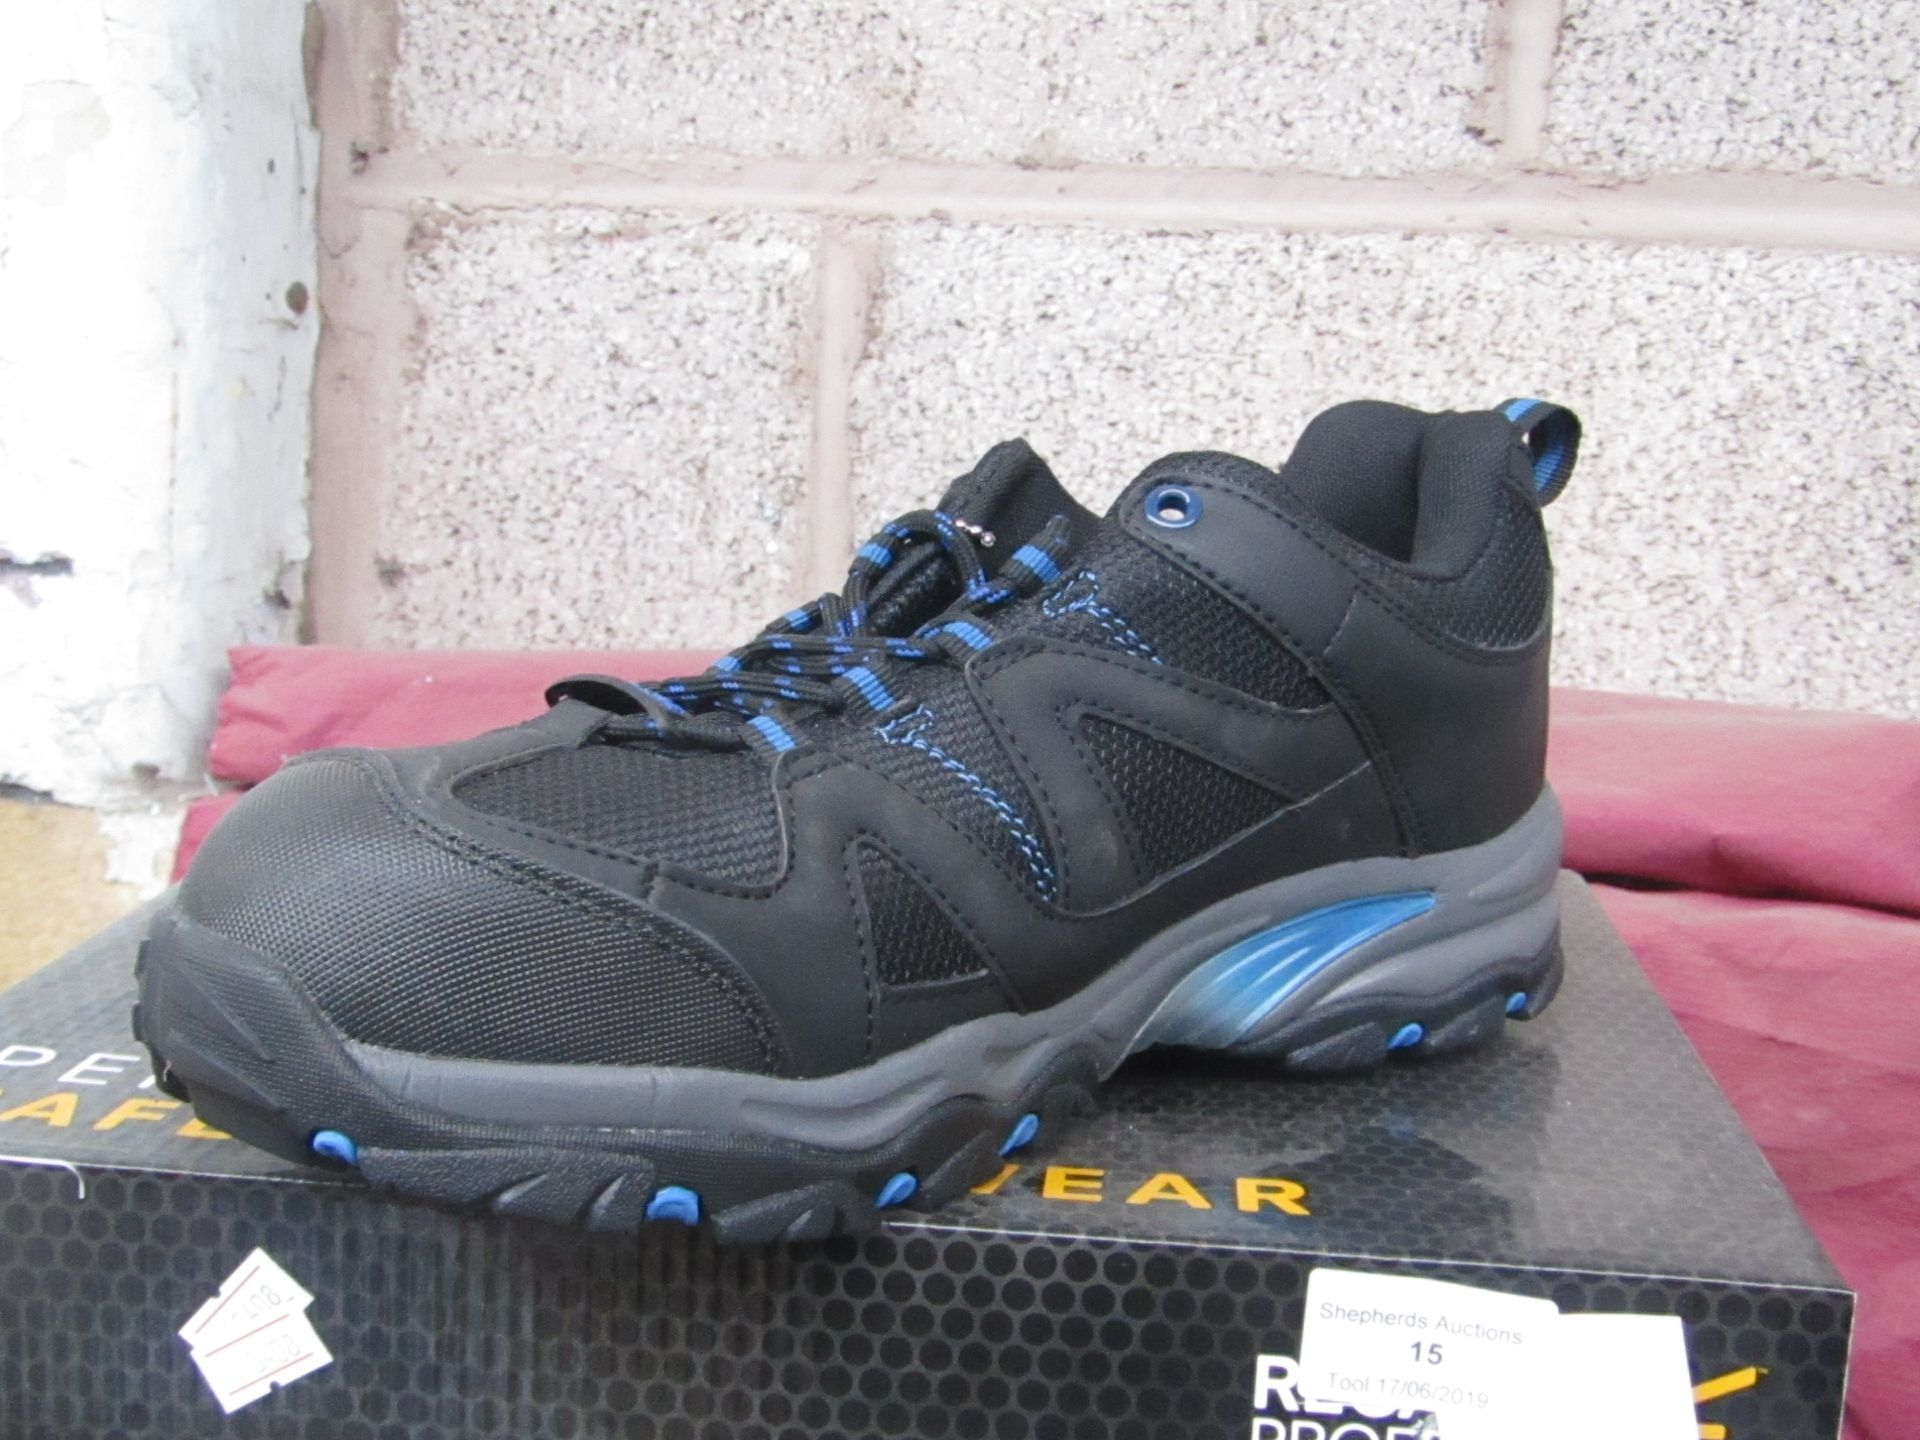 Lot 17 - Regatta professional safety footwear, size UK 9, boxed and new